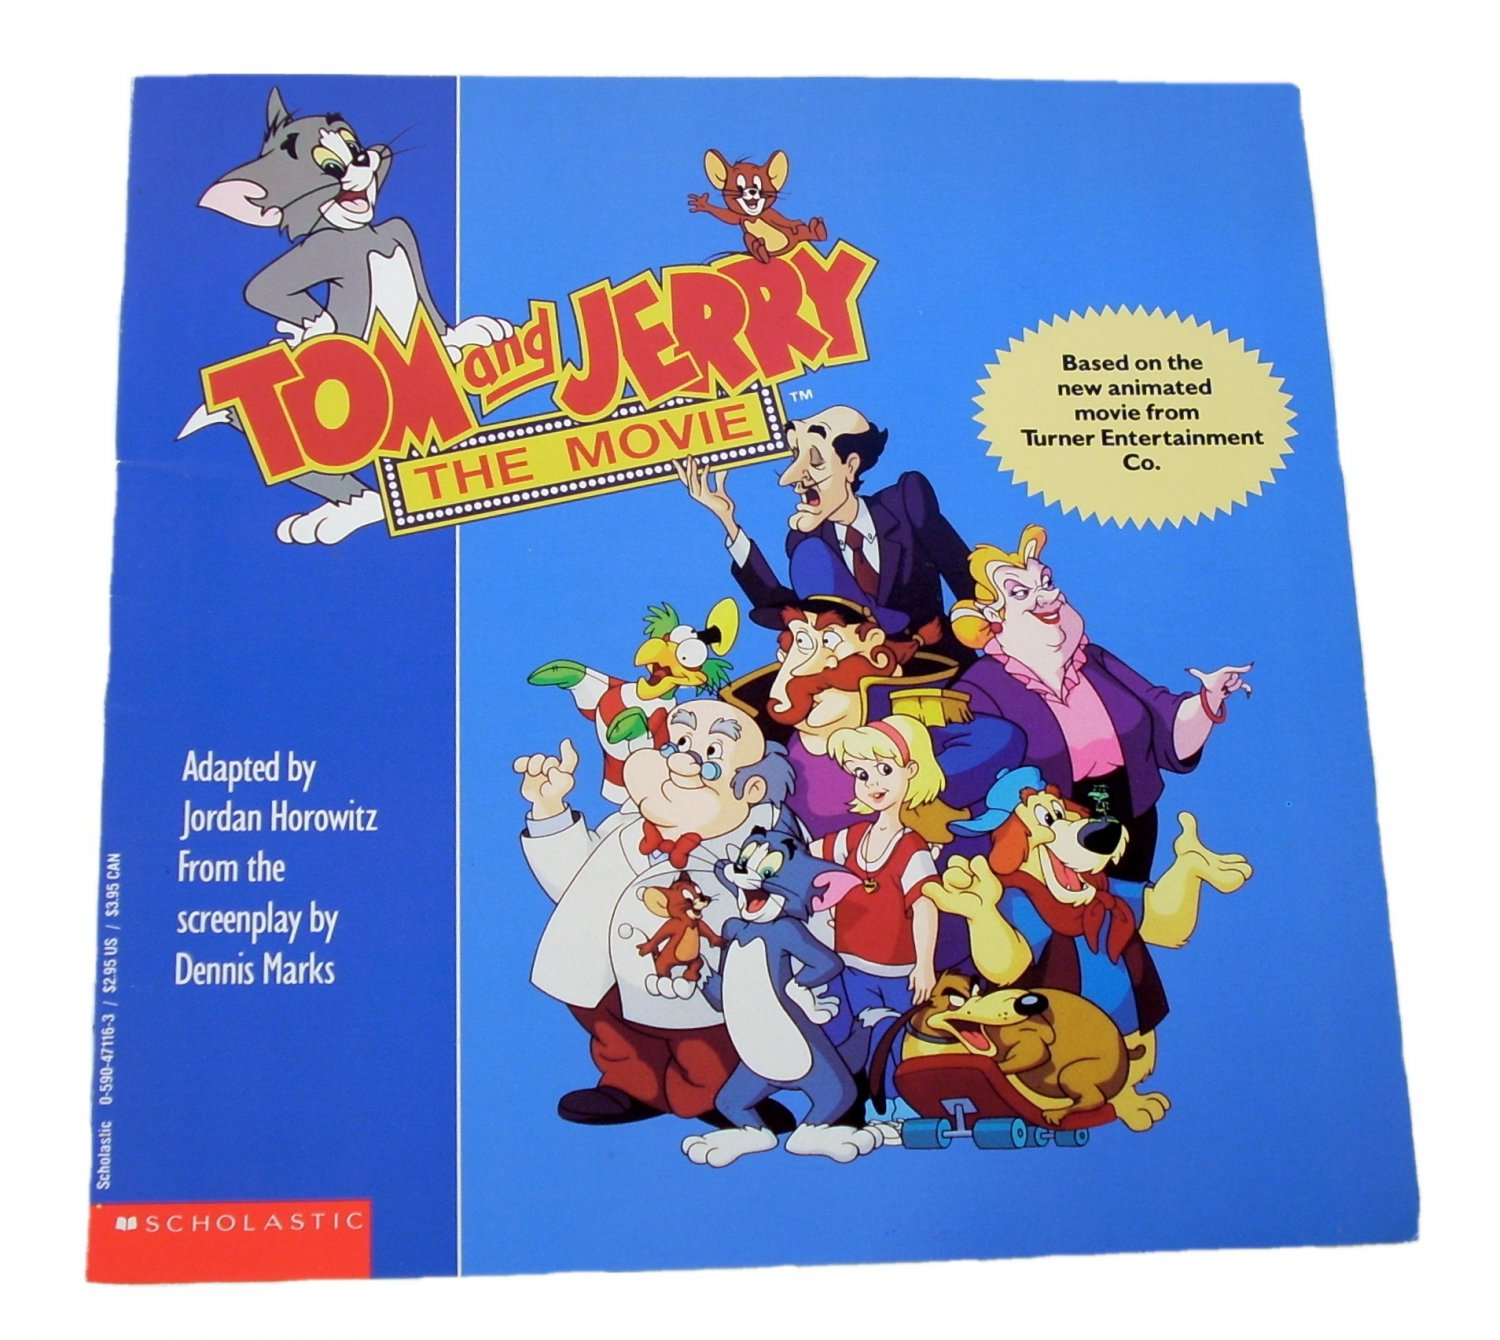 Tom and Jerry: The Movie by Jordan Horowitz 1993 Paperback